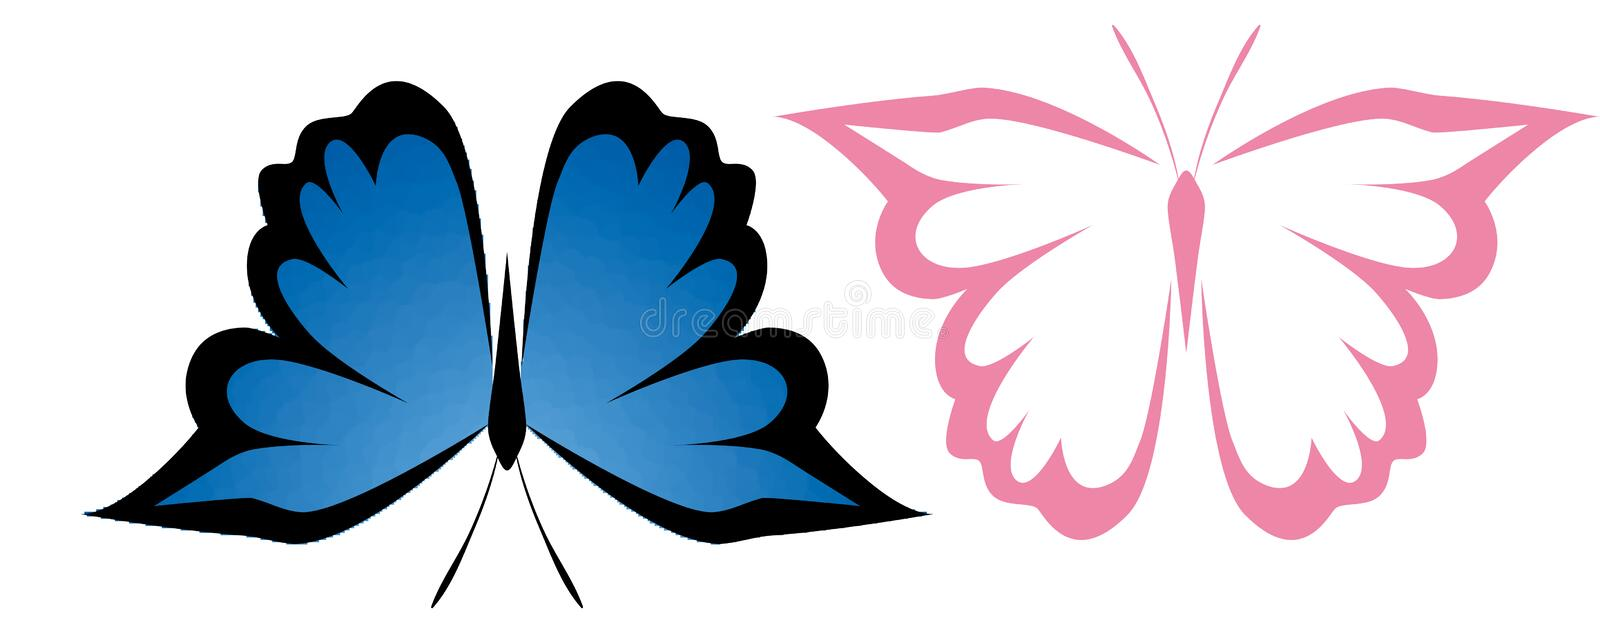 Download Butterfly stock image. Image of simple, logo, insect - 13165489